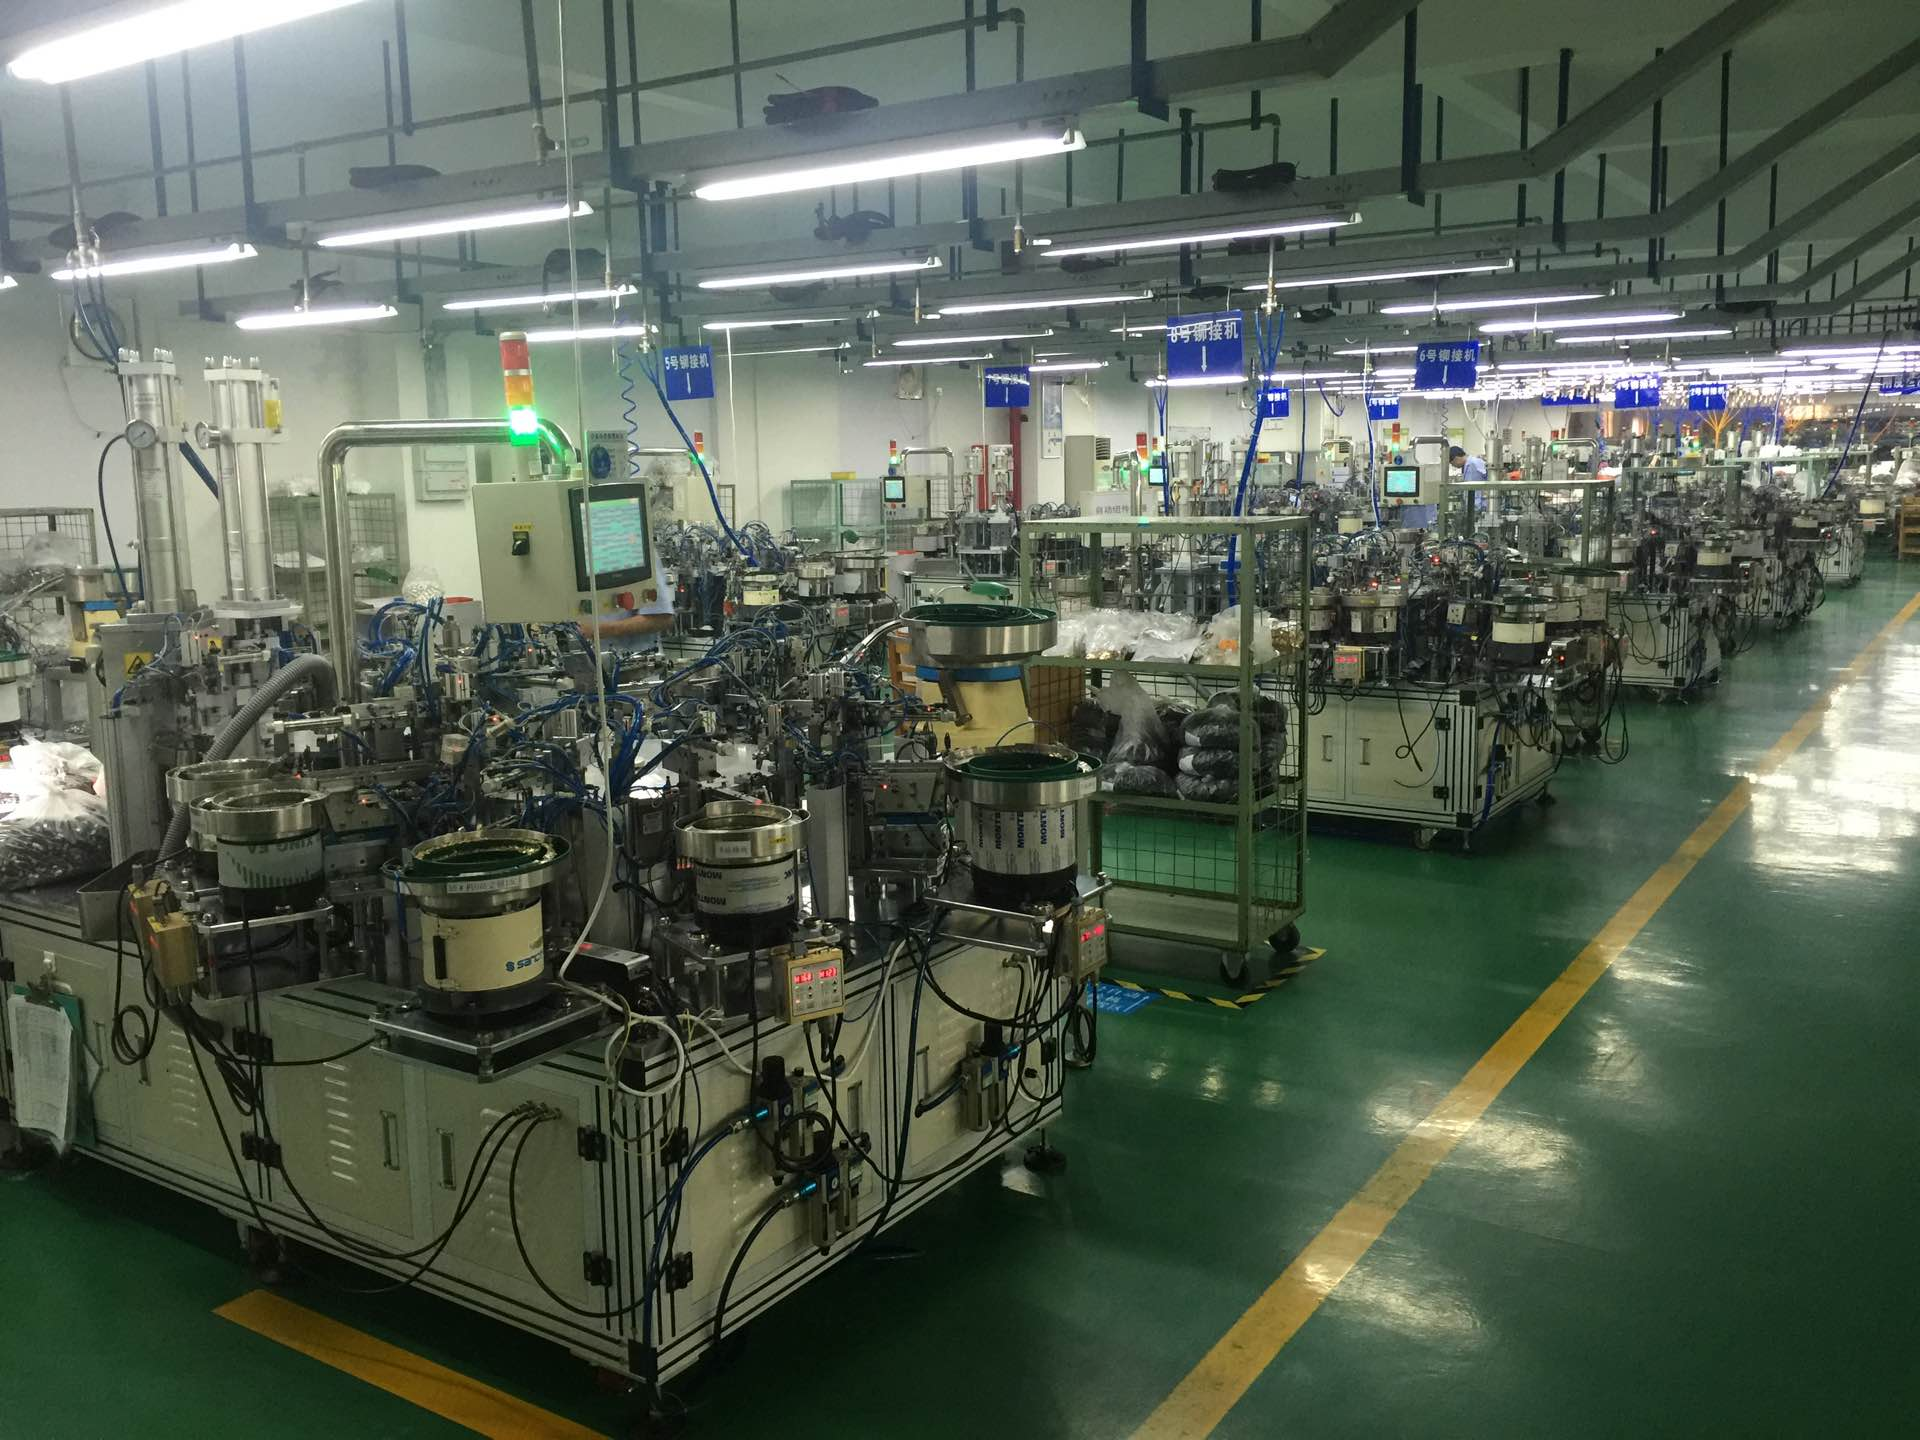 Fully automatic assembly line